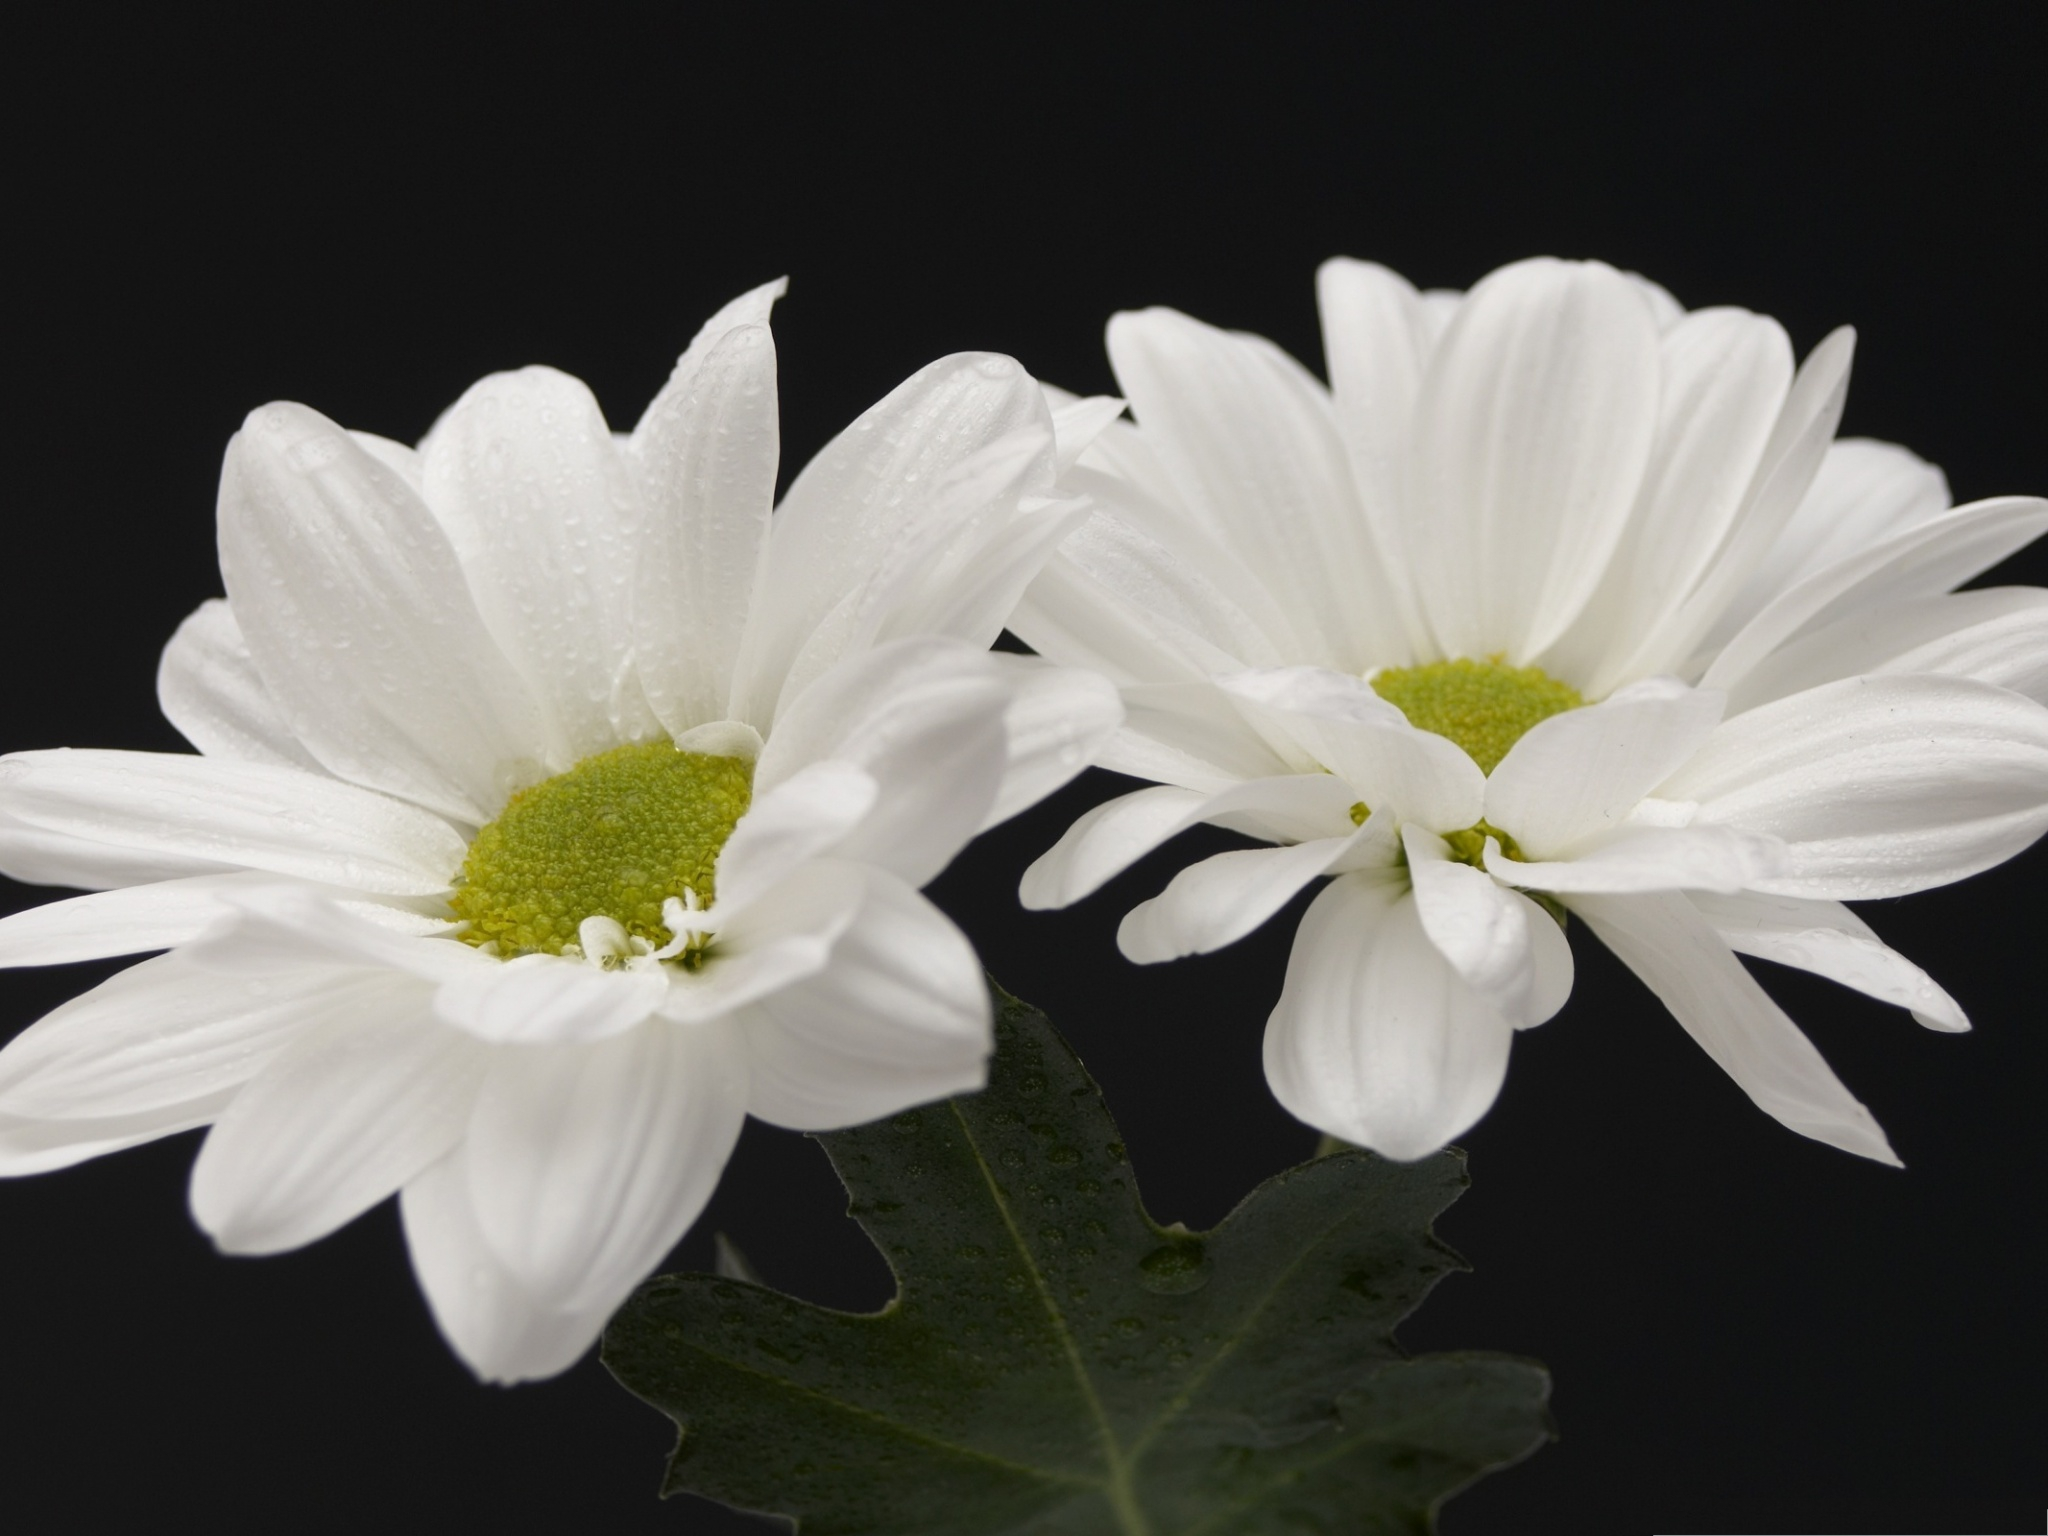 click to free download the wallpaper--Two White Flowers Image, Blooming Flowers on Black Background, Pure and Impressive Scene 2048X1536 free wallpaper download